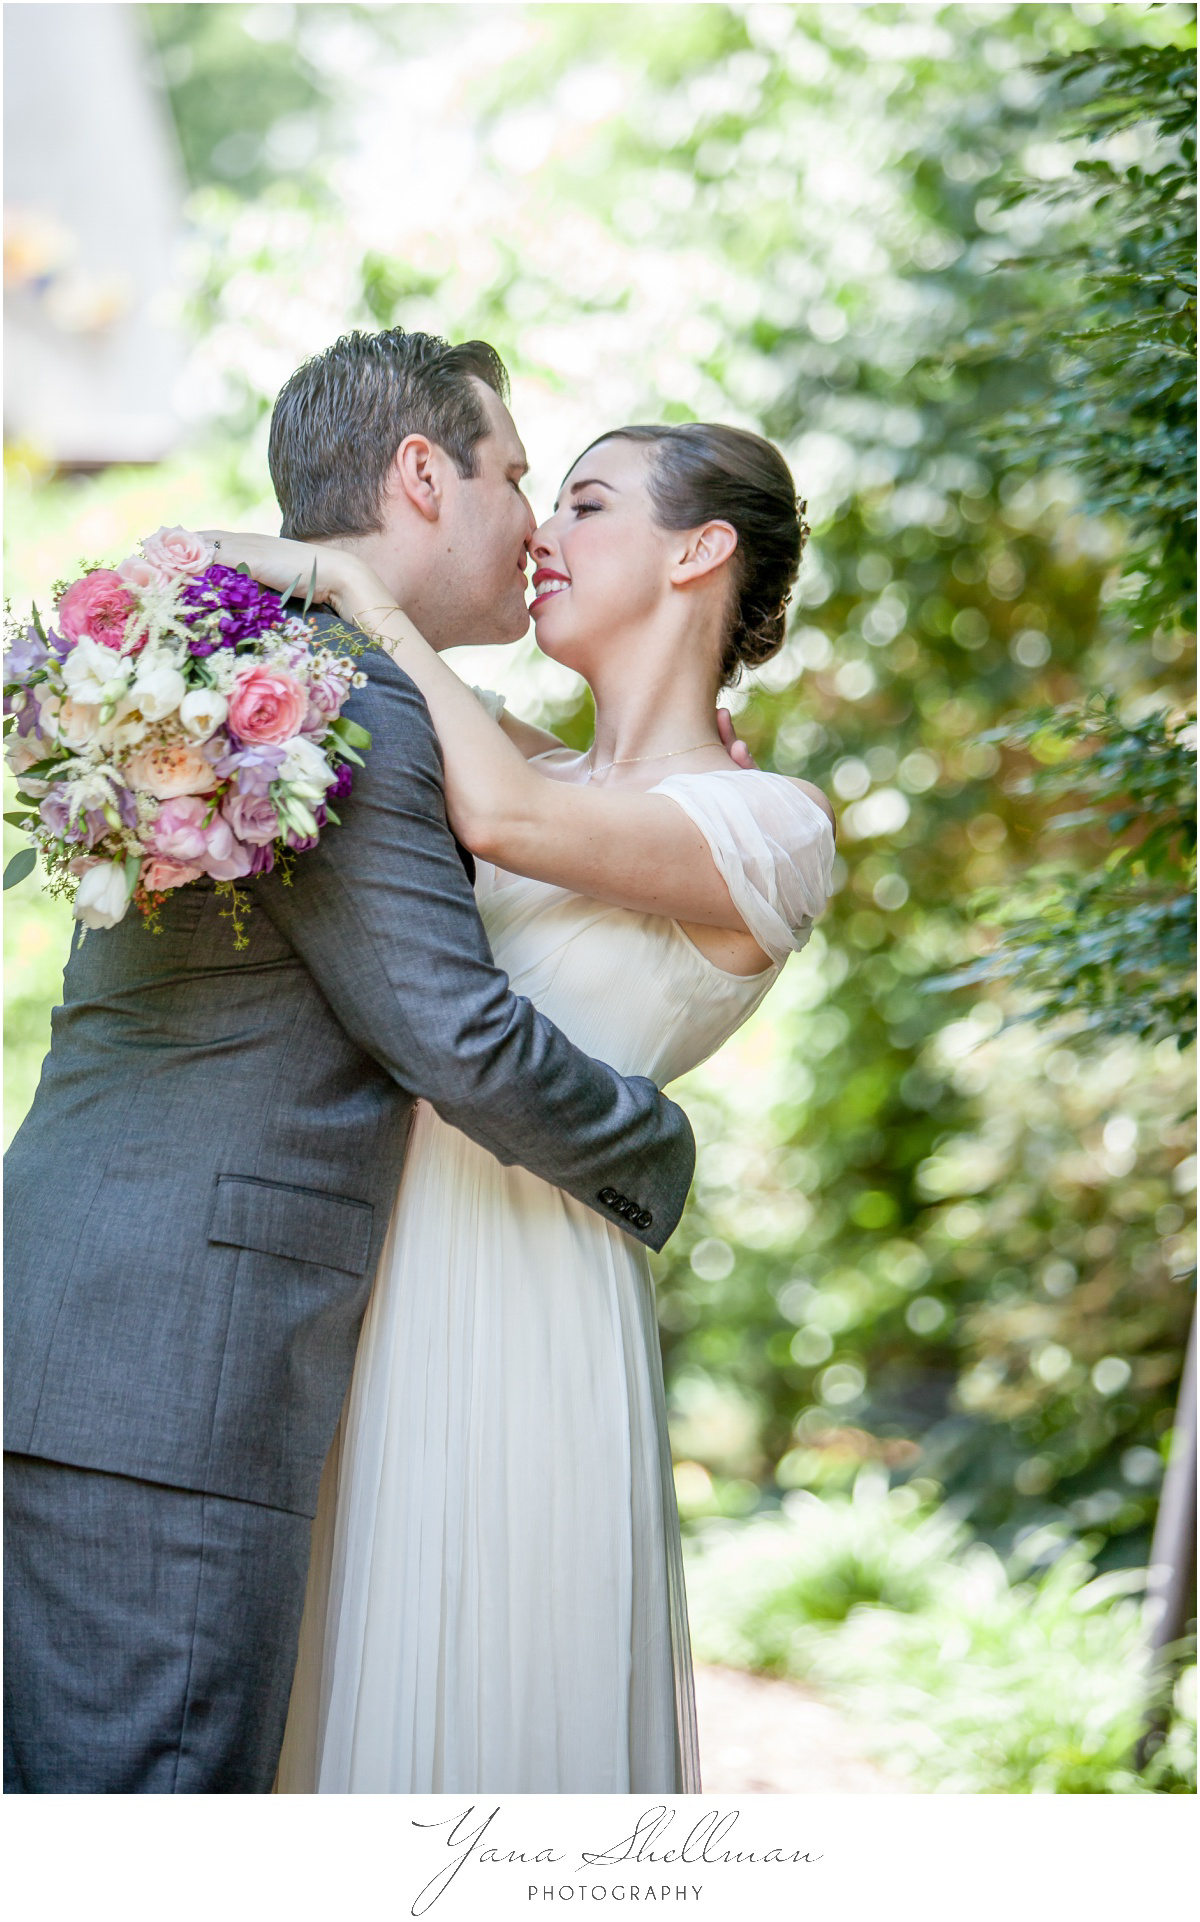 General Warren Inne Wedding Photos by Center City Philadelphia Wedding Photographers - Rachel+John Wedding Photos